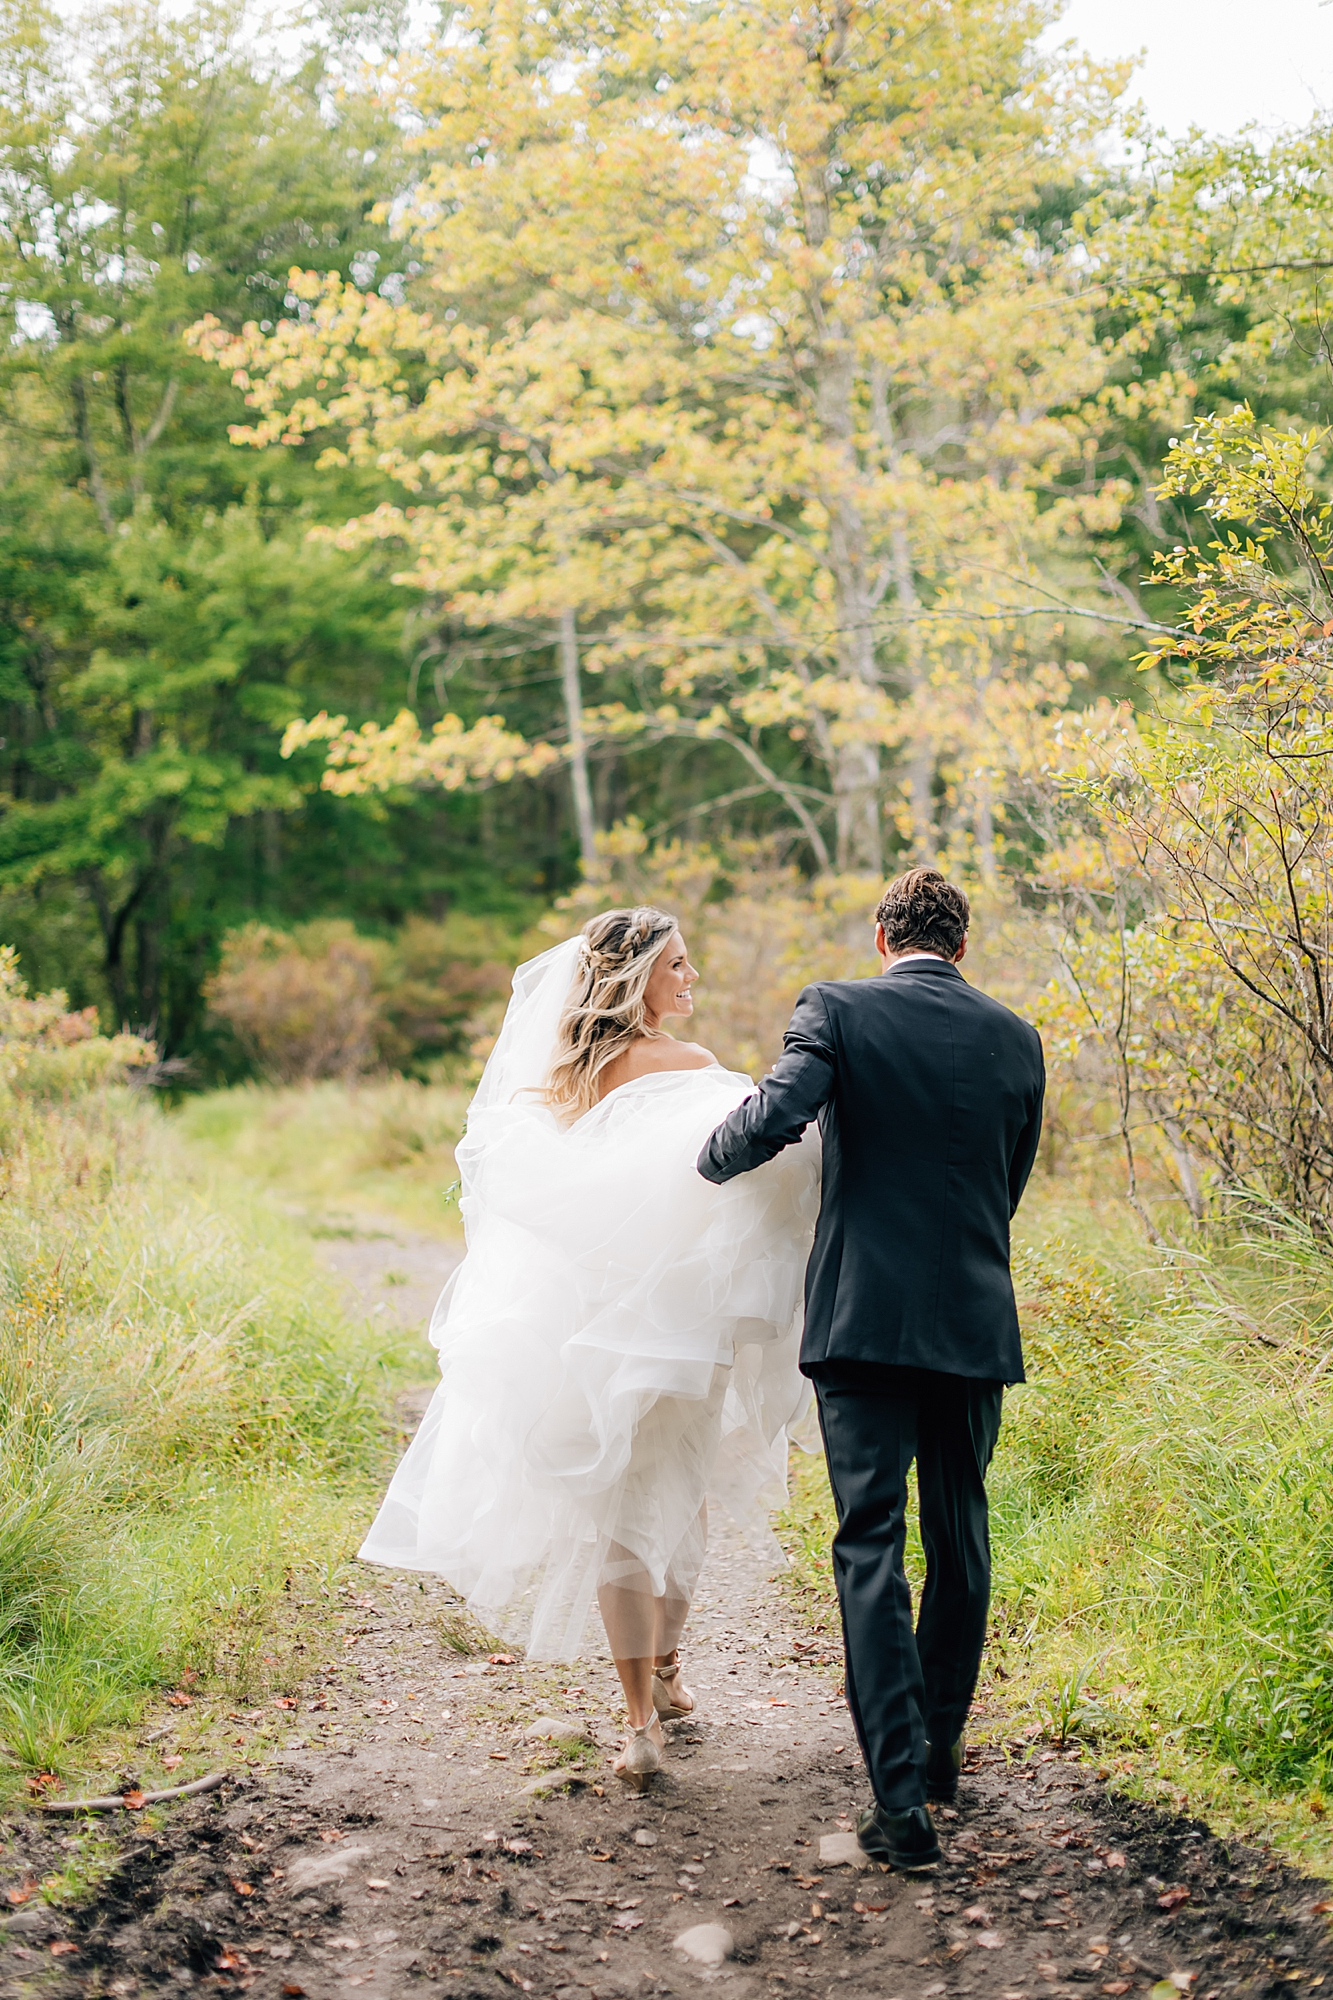 Camp Canadensis Wedding Photography by Magdalena Studios 0026 1